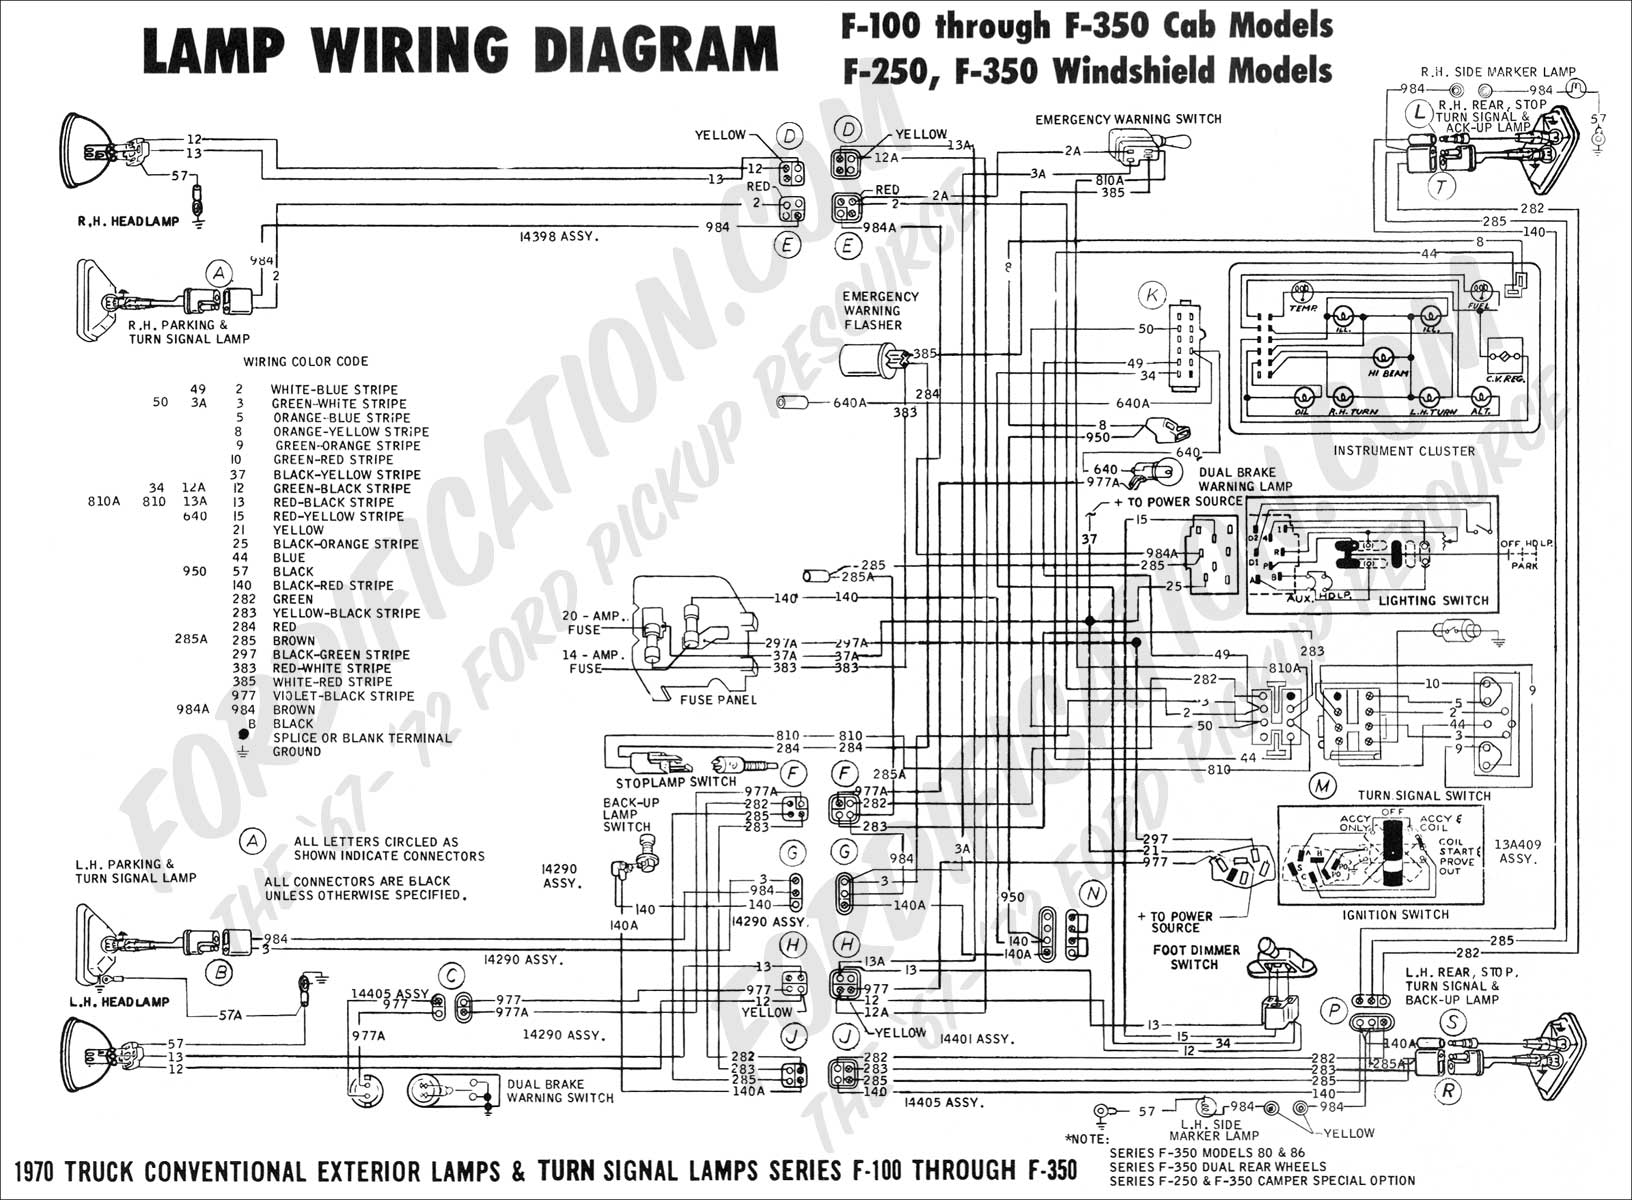 f250 wiring diagrams wiring u2022 wiring diagrams rh boltsoft net 2006 Ford F-250 Wiring Diagram 2006 Ford F-250 Wiring Diagram